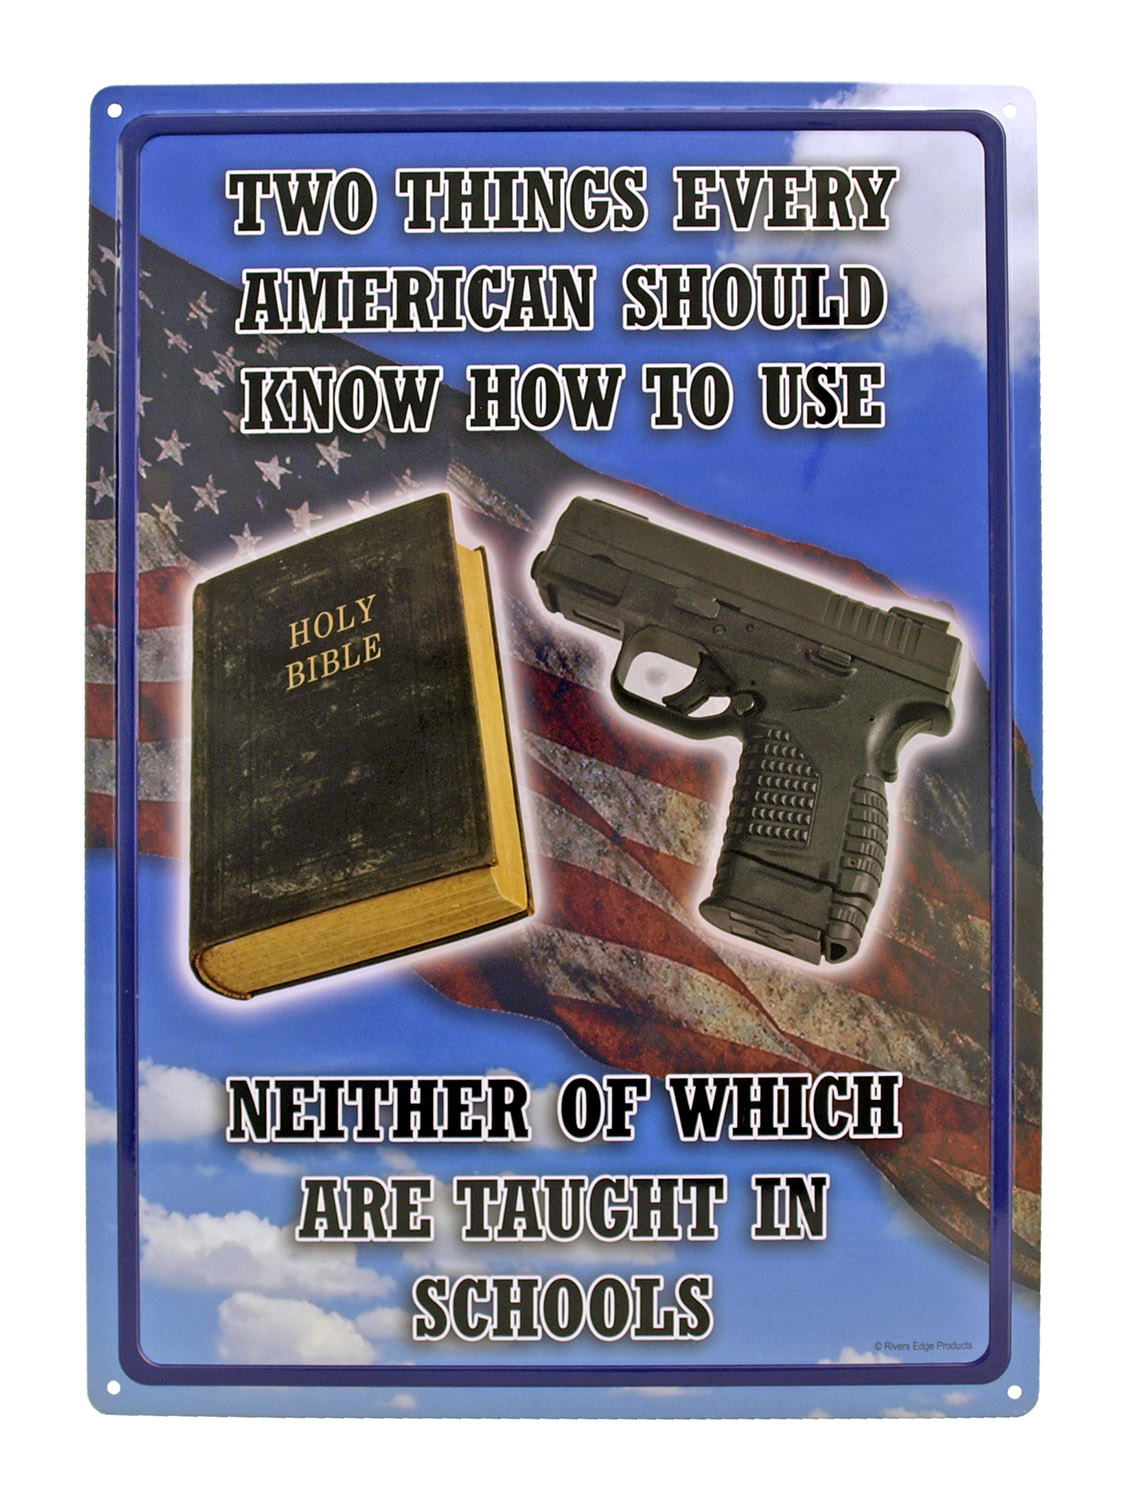 Every American Should Know How to Use - Tin Sign